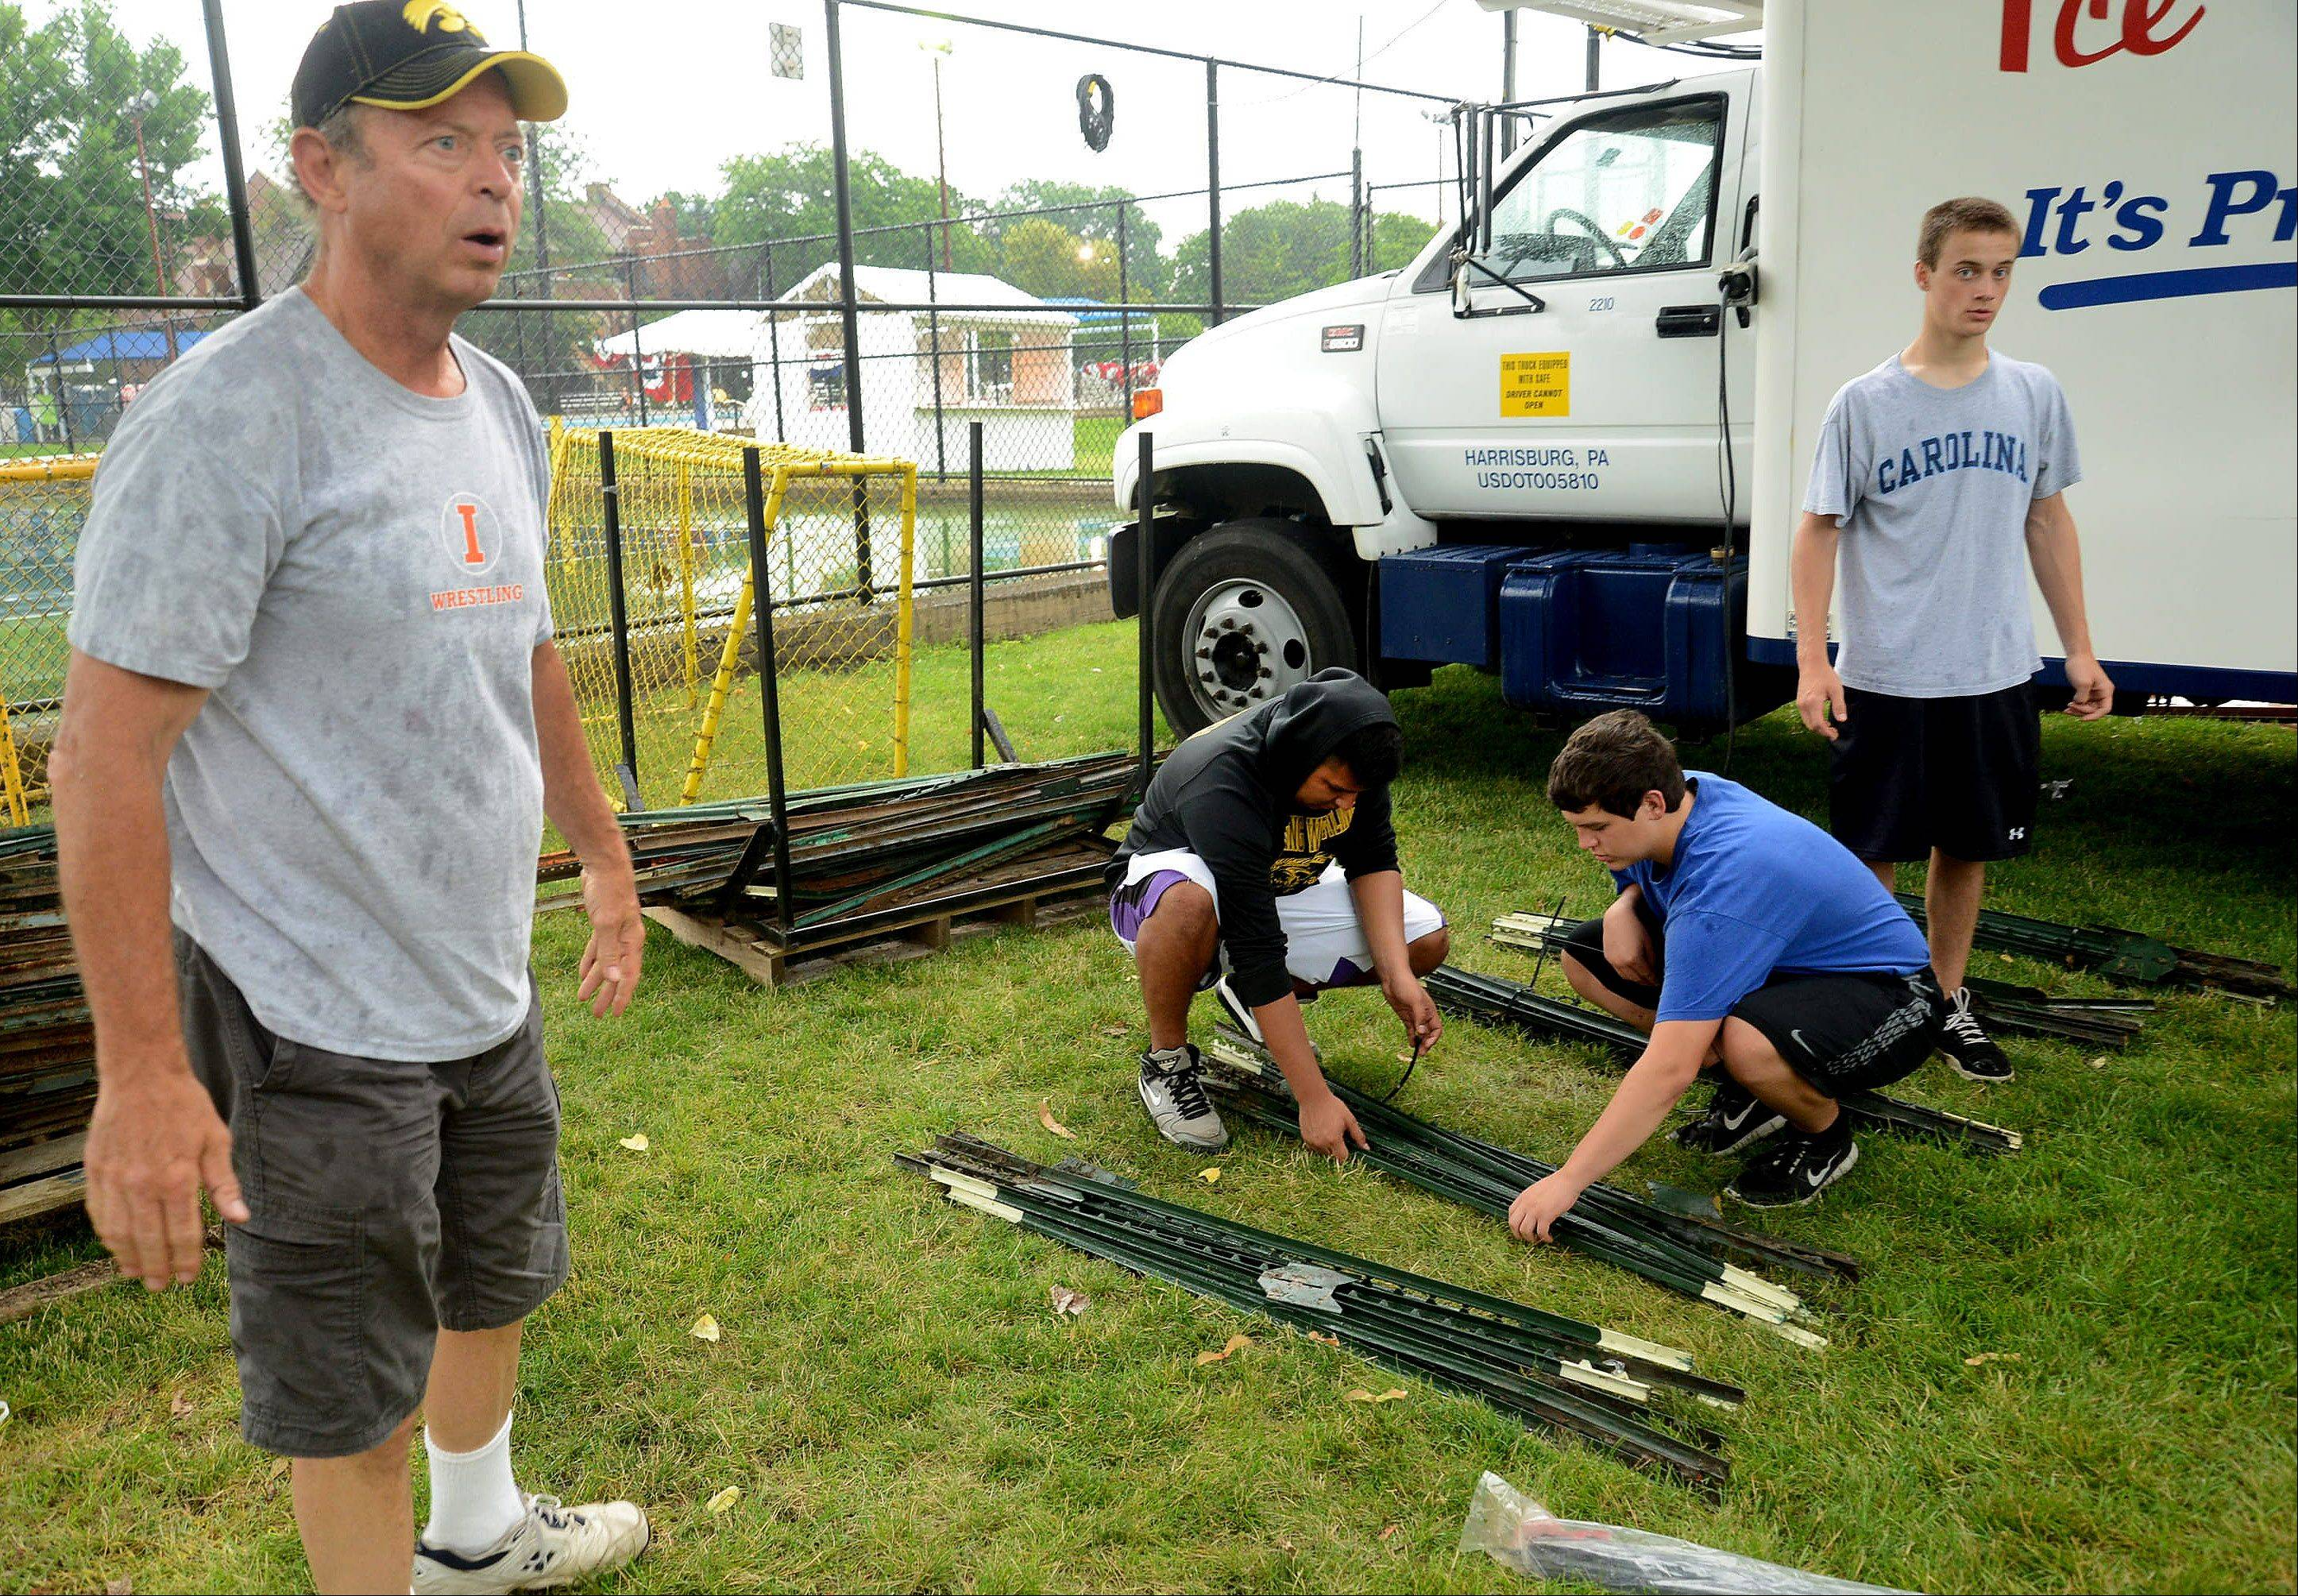 Dave Froehlich, head wrestling coach at Rolling Meadows High School, helps his wrestlers from left, Ruben Guerrero, Grant Palmer and Dan Stubing clean up after Frontier Days.